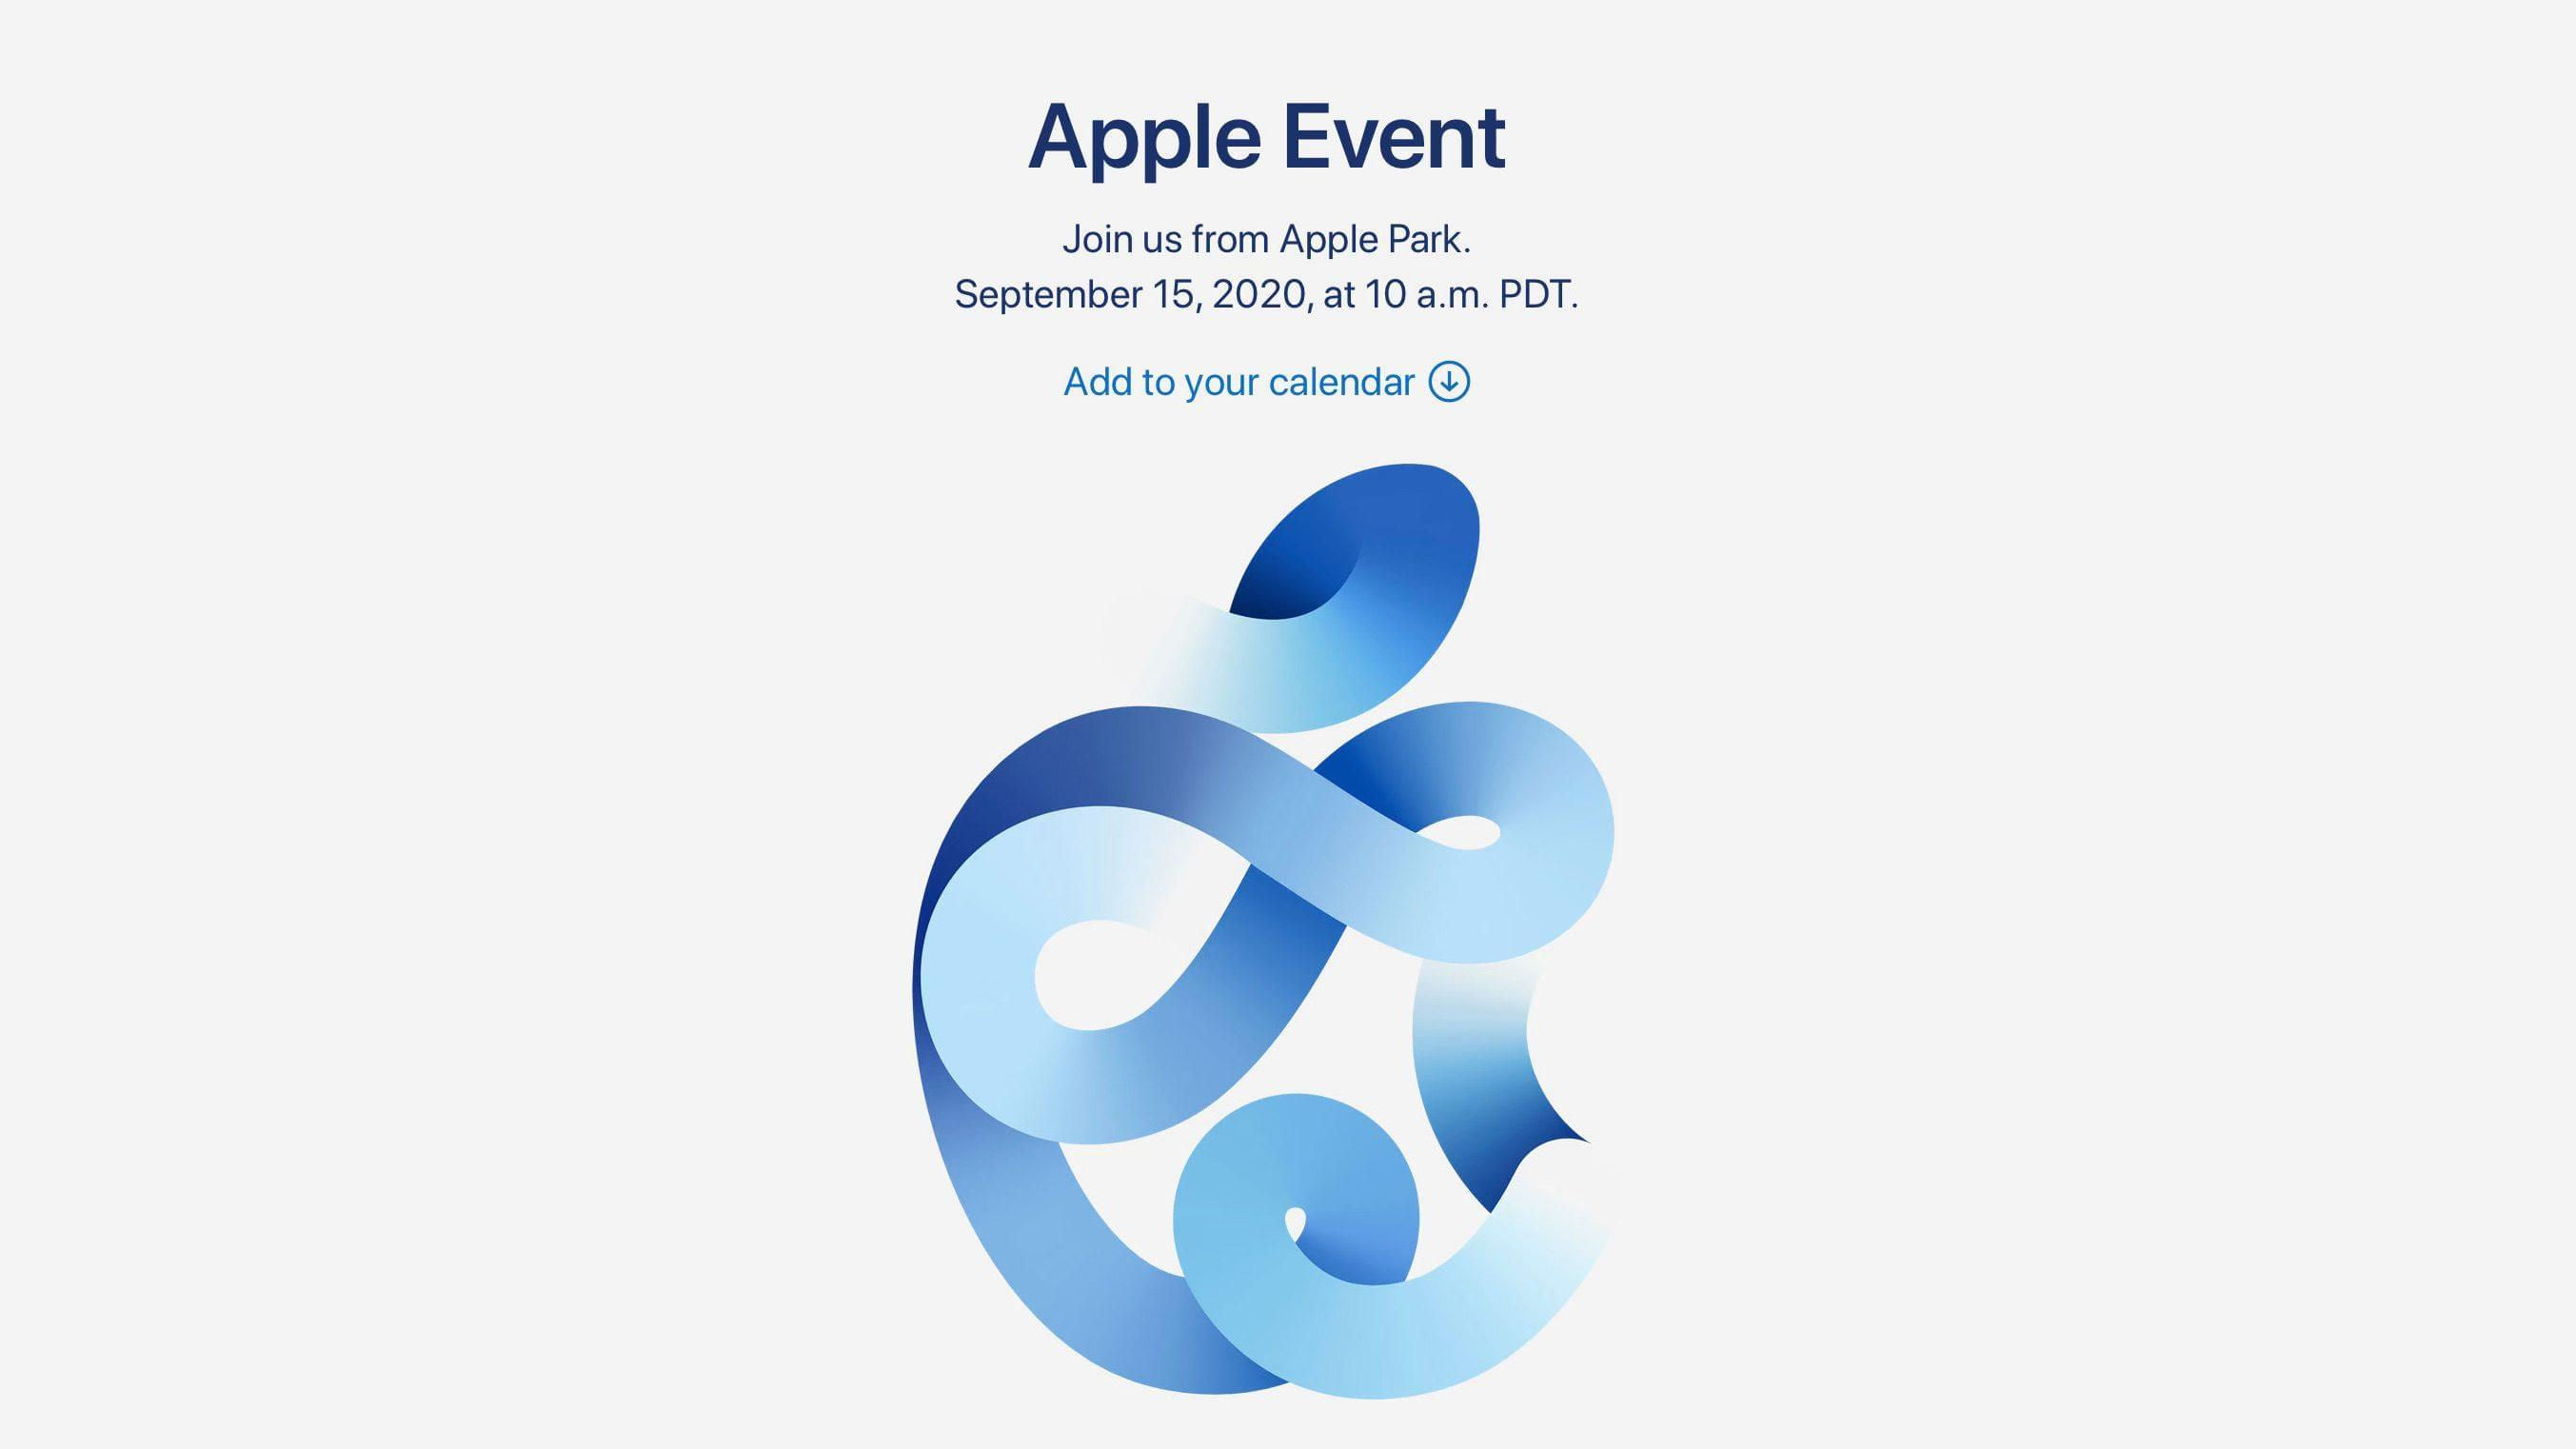 Apple Announces Virtual Event. Could It Be For The New iPhone?